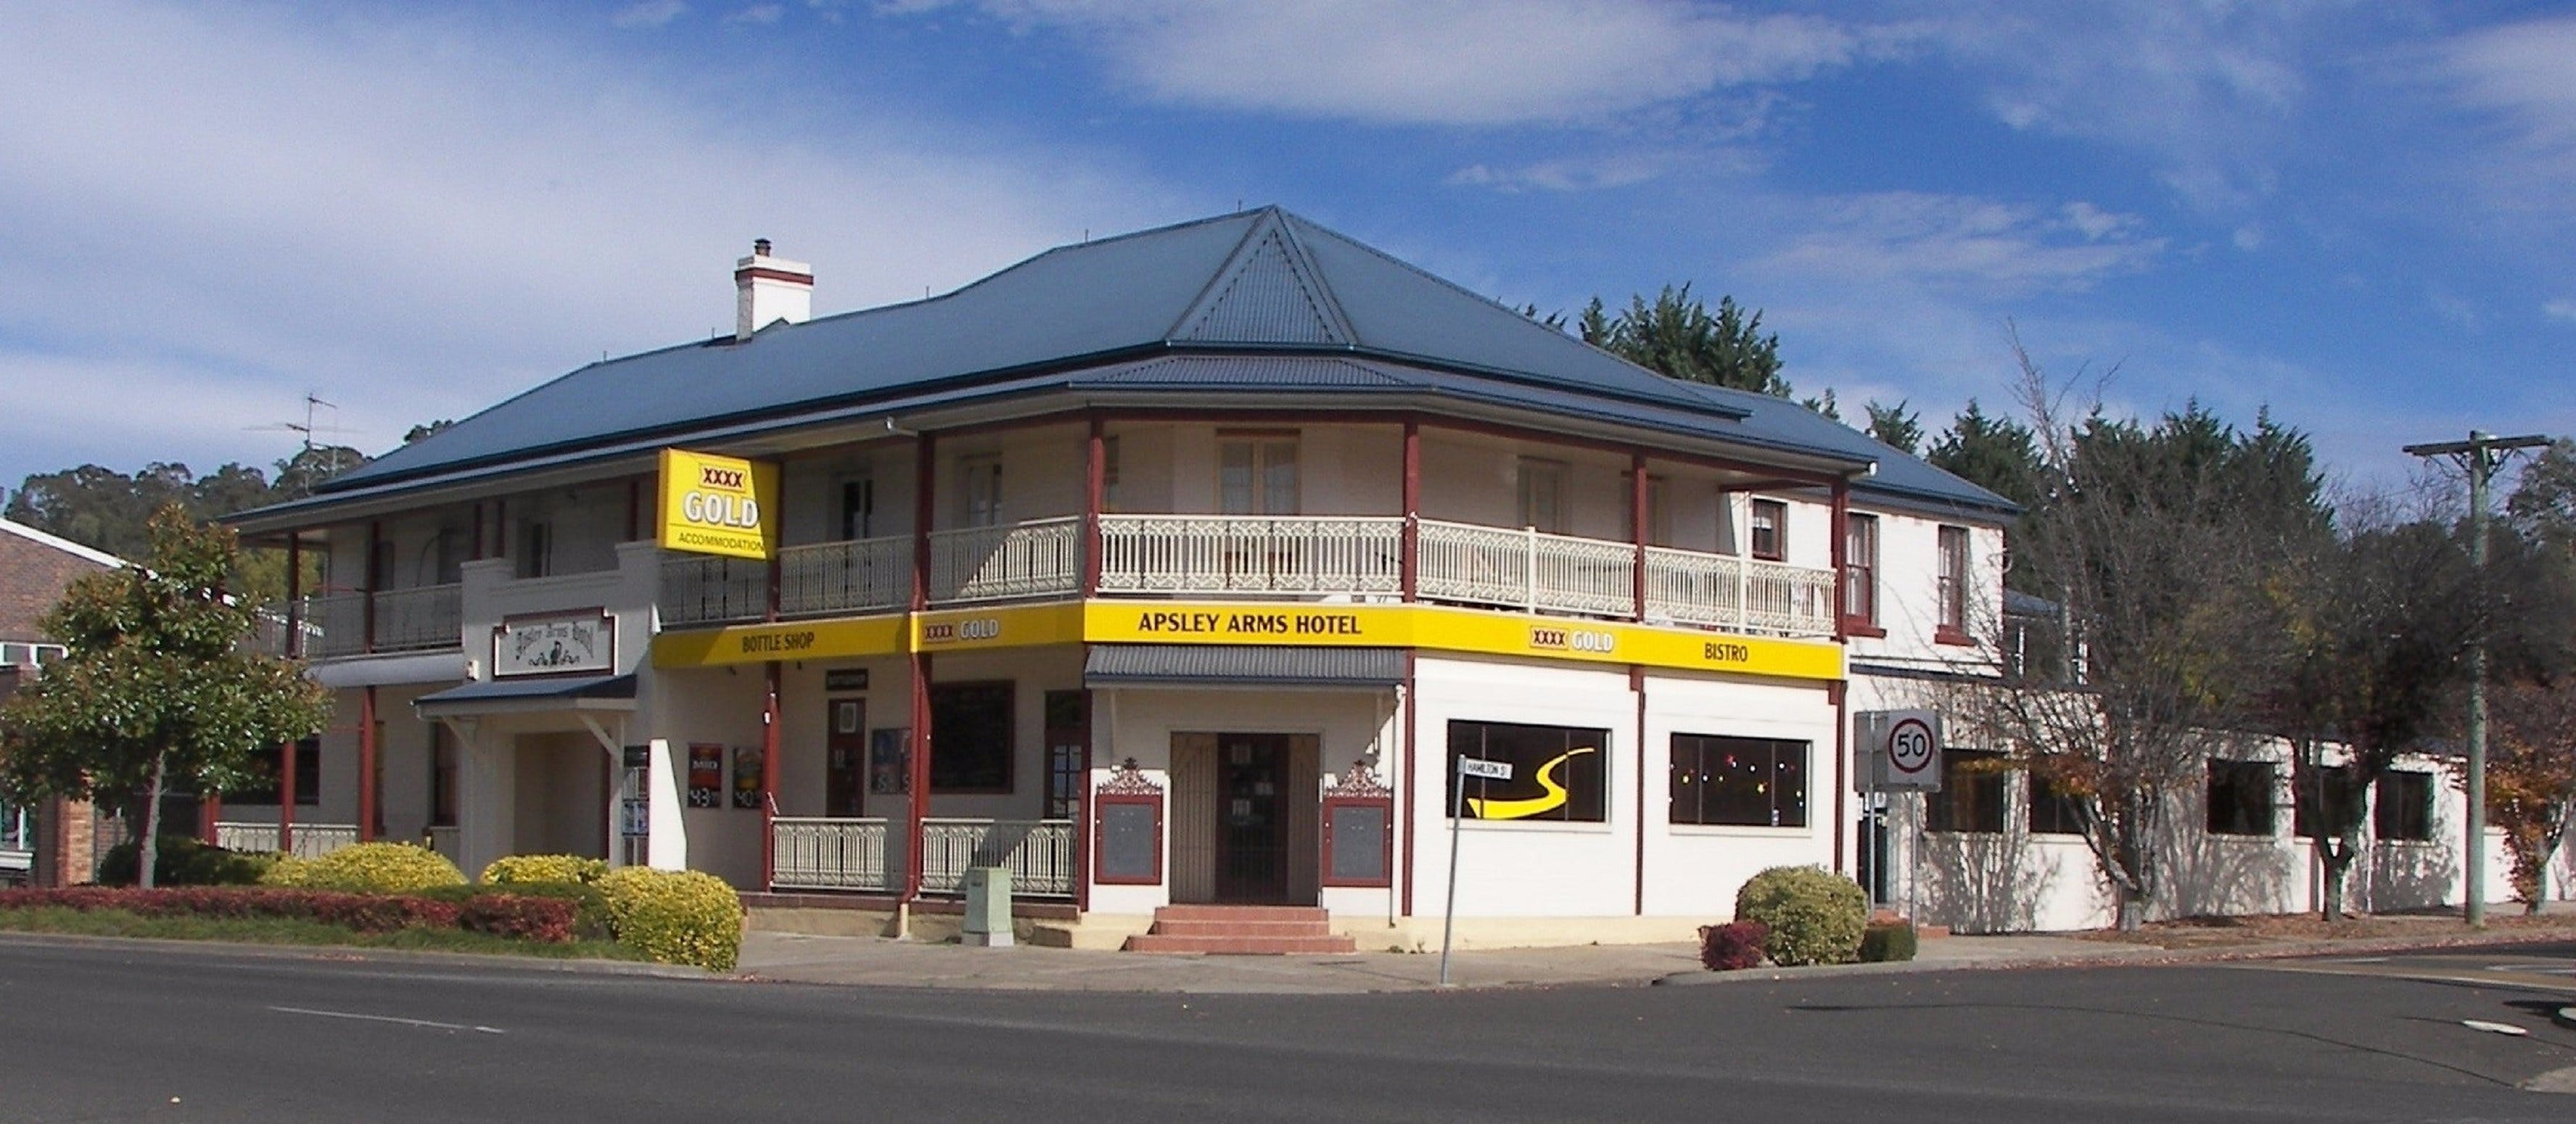 Apsley Arms Hotel - Accommodation Cairns